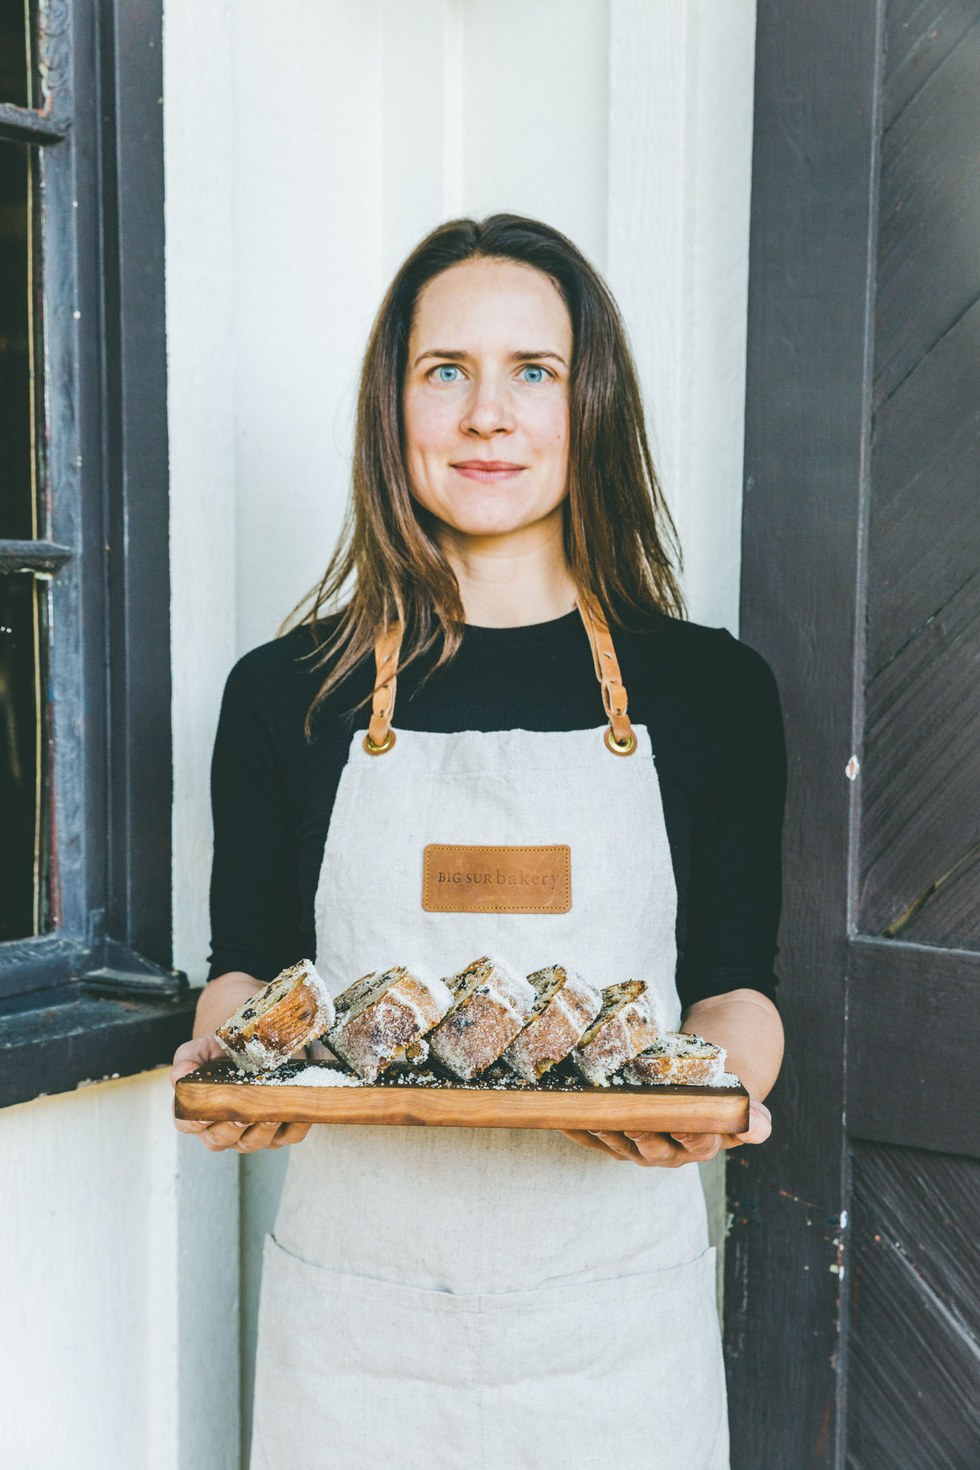 Michelle Rizzolo, chef and co-owner, Big Sur Bakery